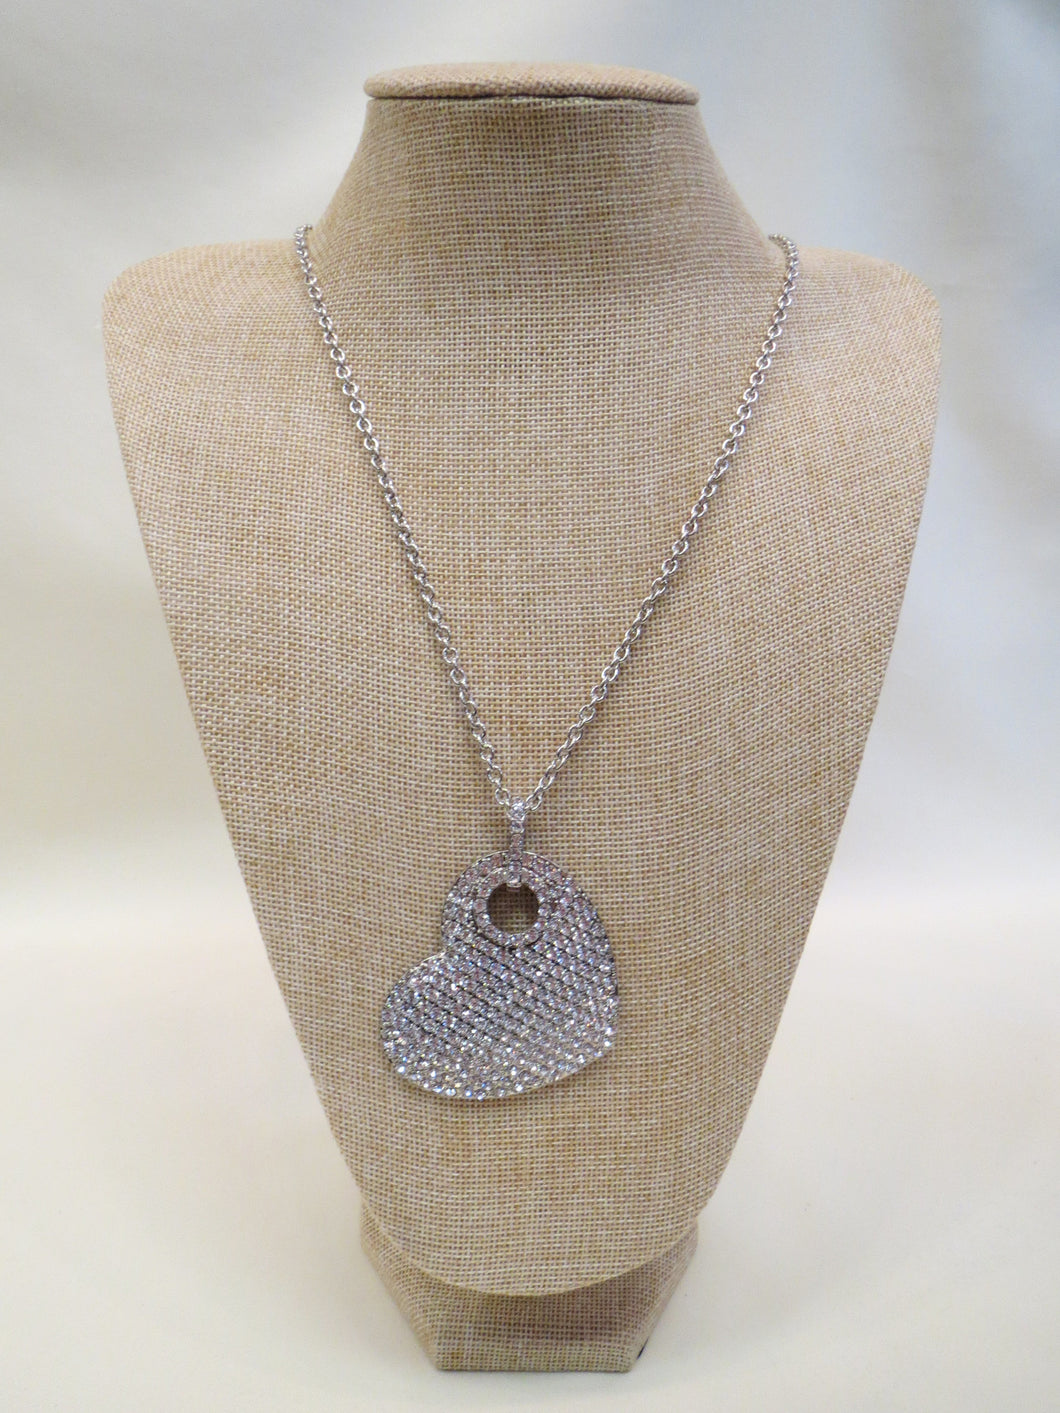 ADO Crystal Heart Necklace | All Dec'd Out